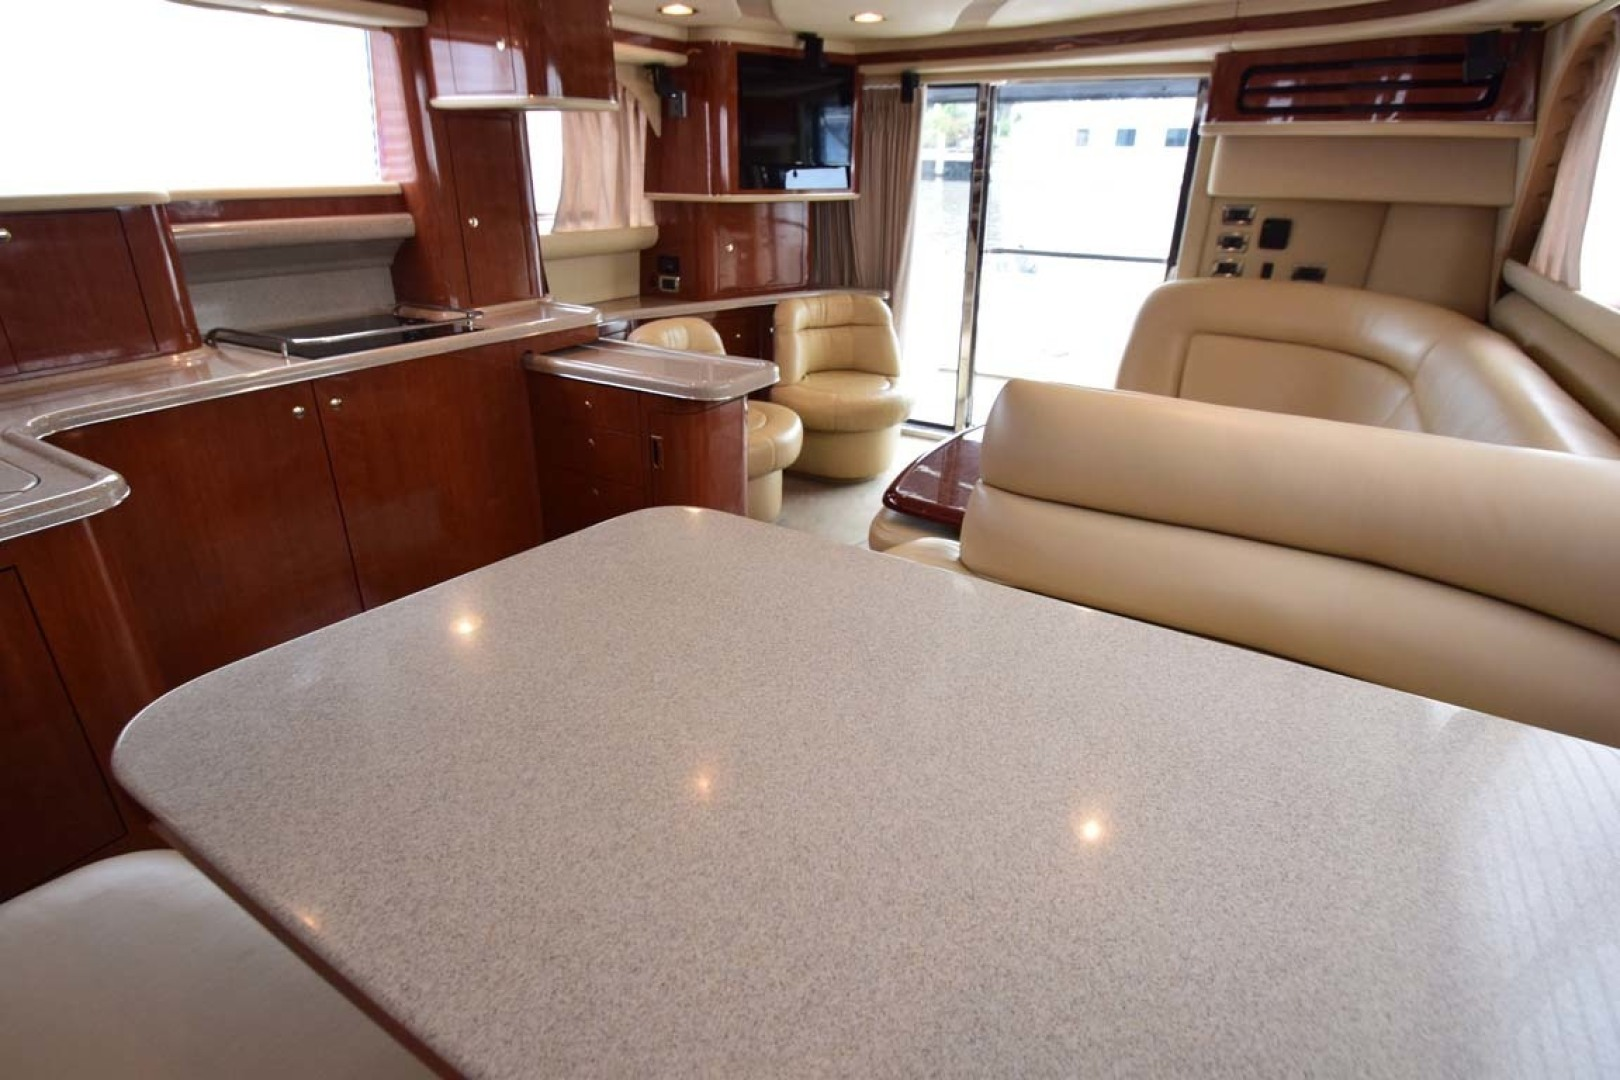 Sea Ray-480 Sedan Bridge 2003-Moondance Stuart-Florida-United States-Dining Table Opposite Galley-1308131 | Thumbnail